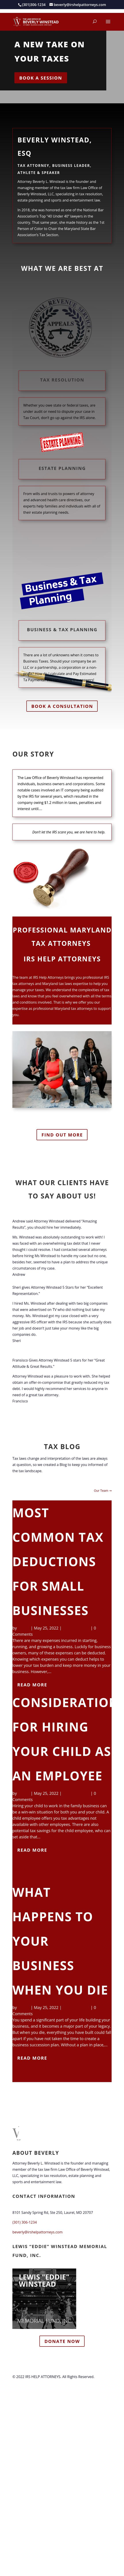 Law Office of Beverly Winstead, LLC - Laurel MD Lawyers